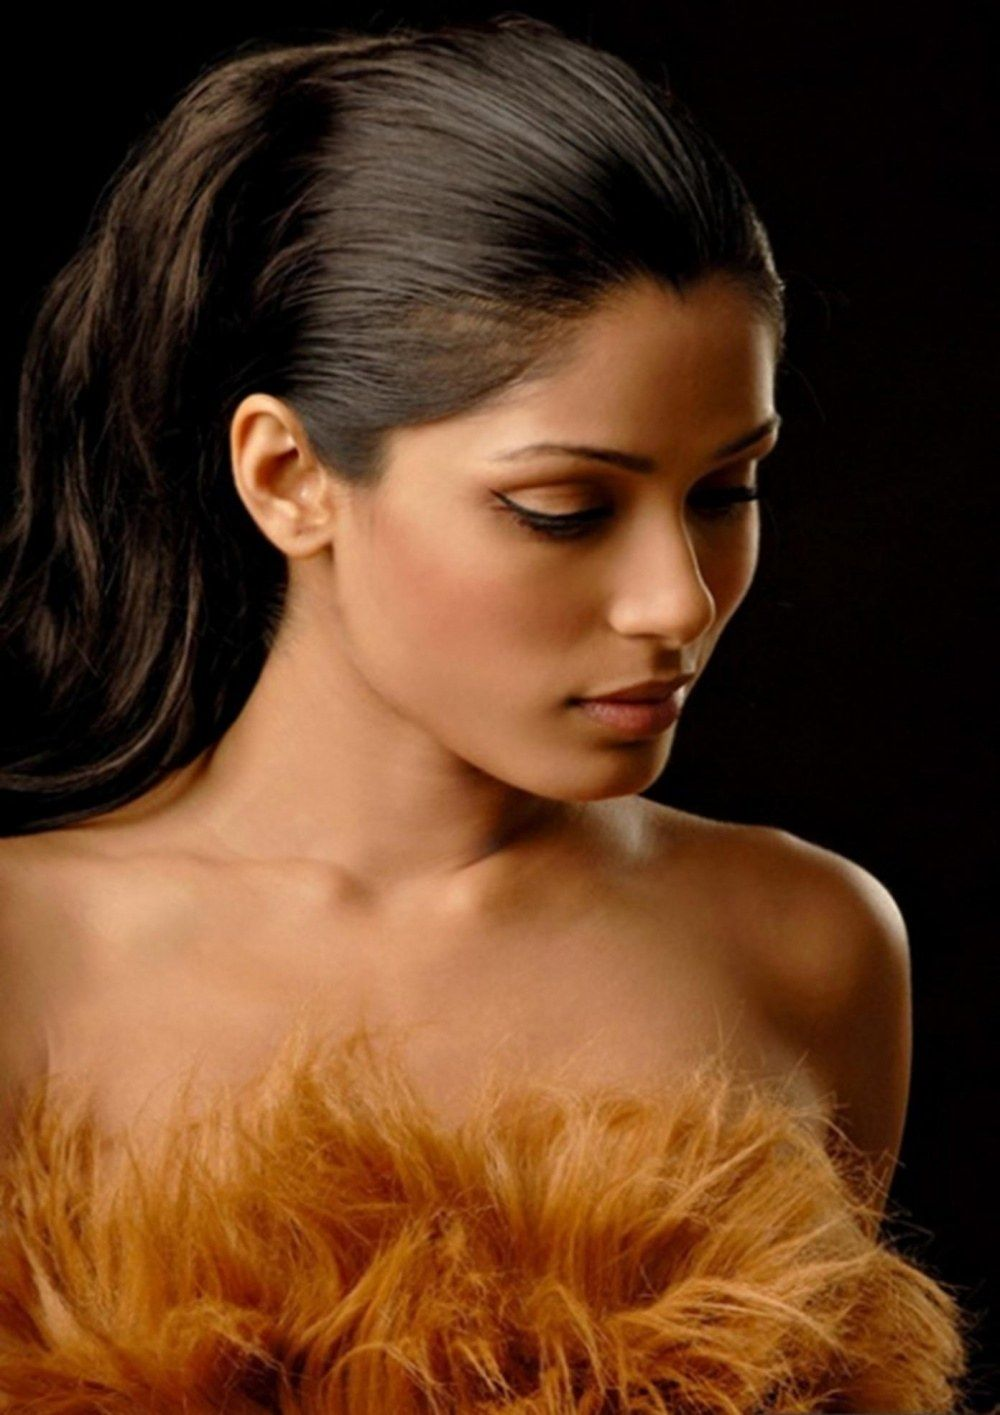 freida pinto facebookfreida pinto instagram, freida pinto tumblr, freida pinto dev patel, freida pinto gif, freida pinto gif hunt, freida pinto 2017, freida pinto style, freida pinto facebook, freida pinto википедия, freida pinto vk, freida pinto news, freida pinto twitter, freida pinto films, freida pinto fashion spot, freida pinto wallpapers, freida pinto ronnie bacardi, freida pinto wdw, freida pinto bruno mars gorilla, freida pinto childhood photos, freida pinto 2016